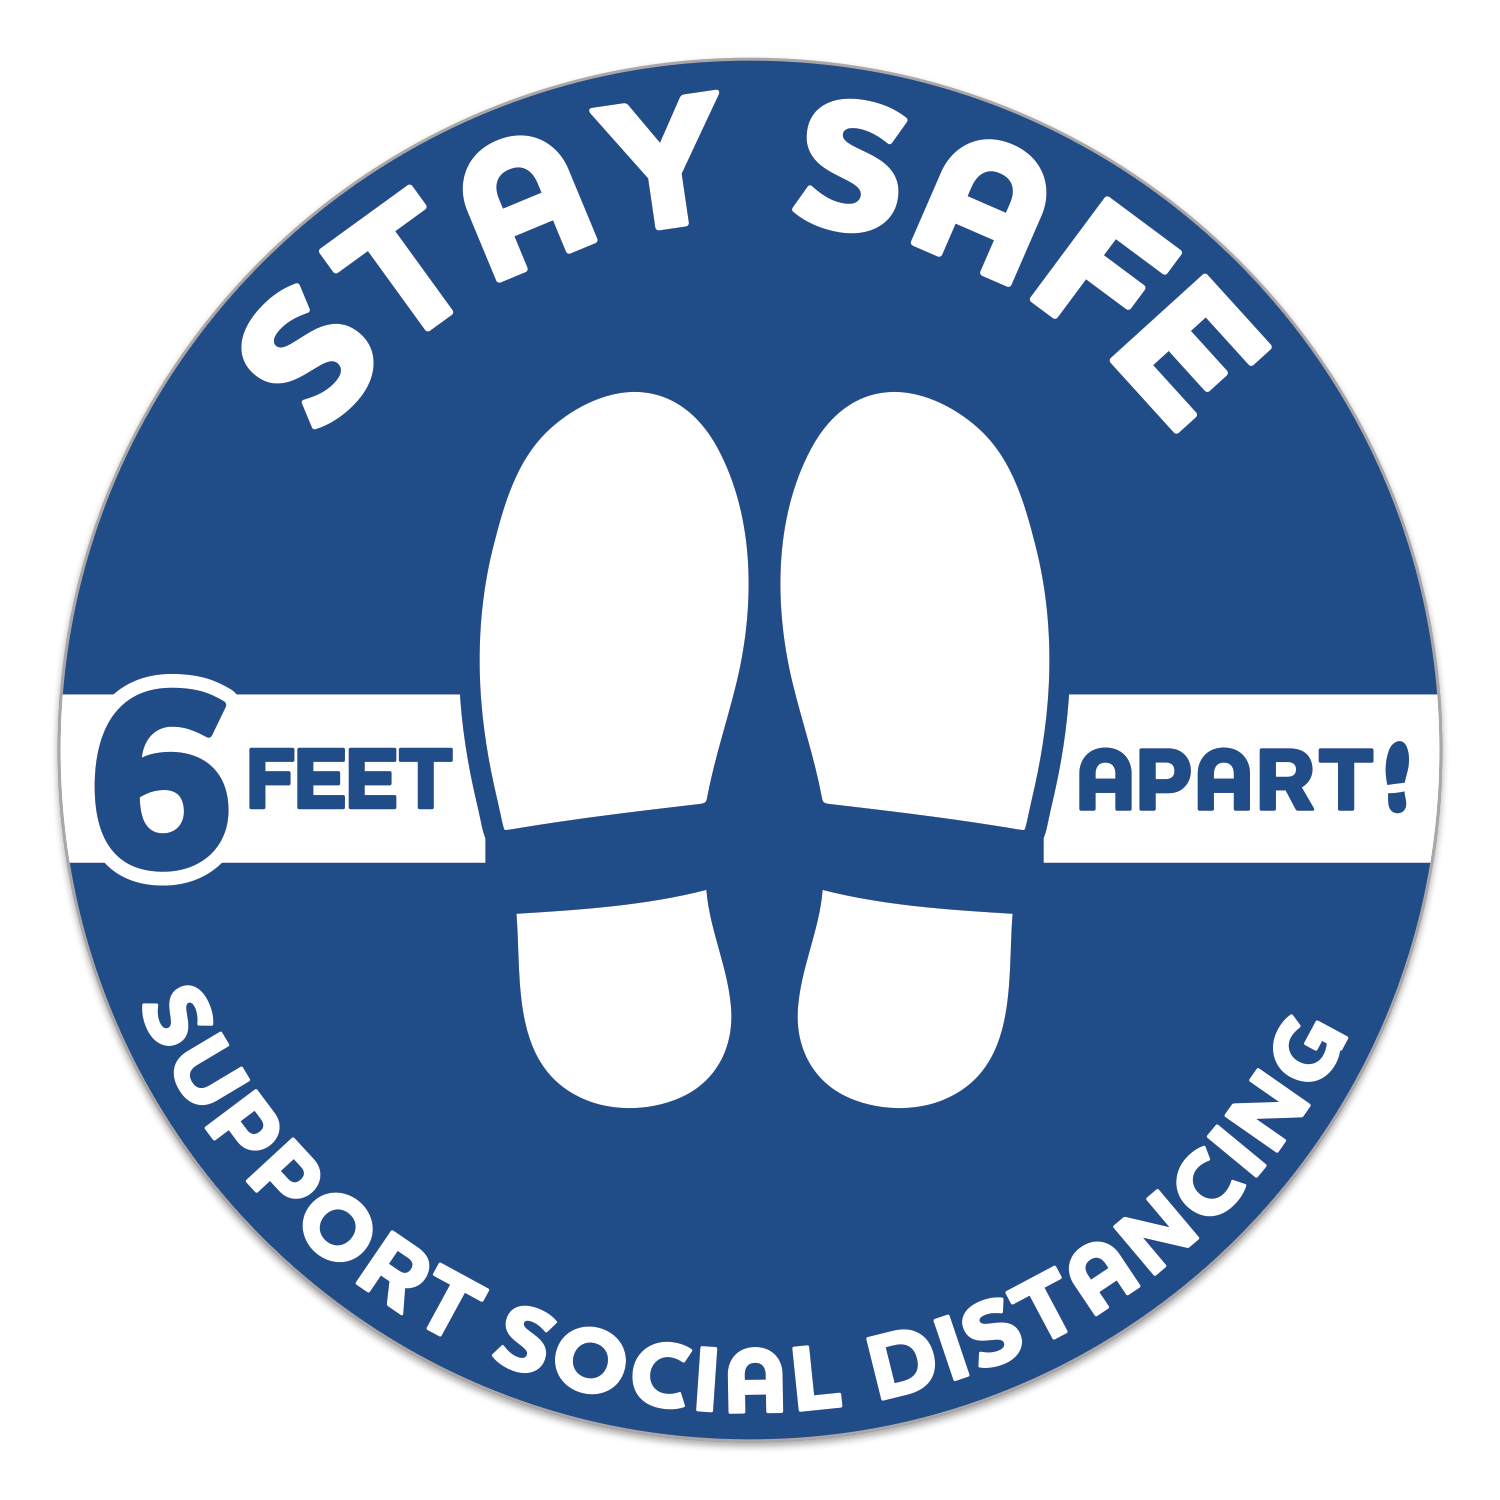 https://www.sswprinting.com/images/products_gallery_images/593601_Stay-Safe-Floor-Decals_hi-res19.png